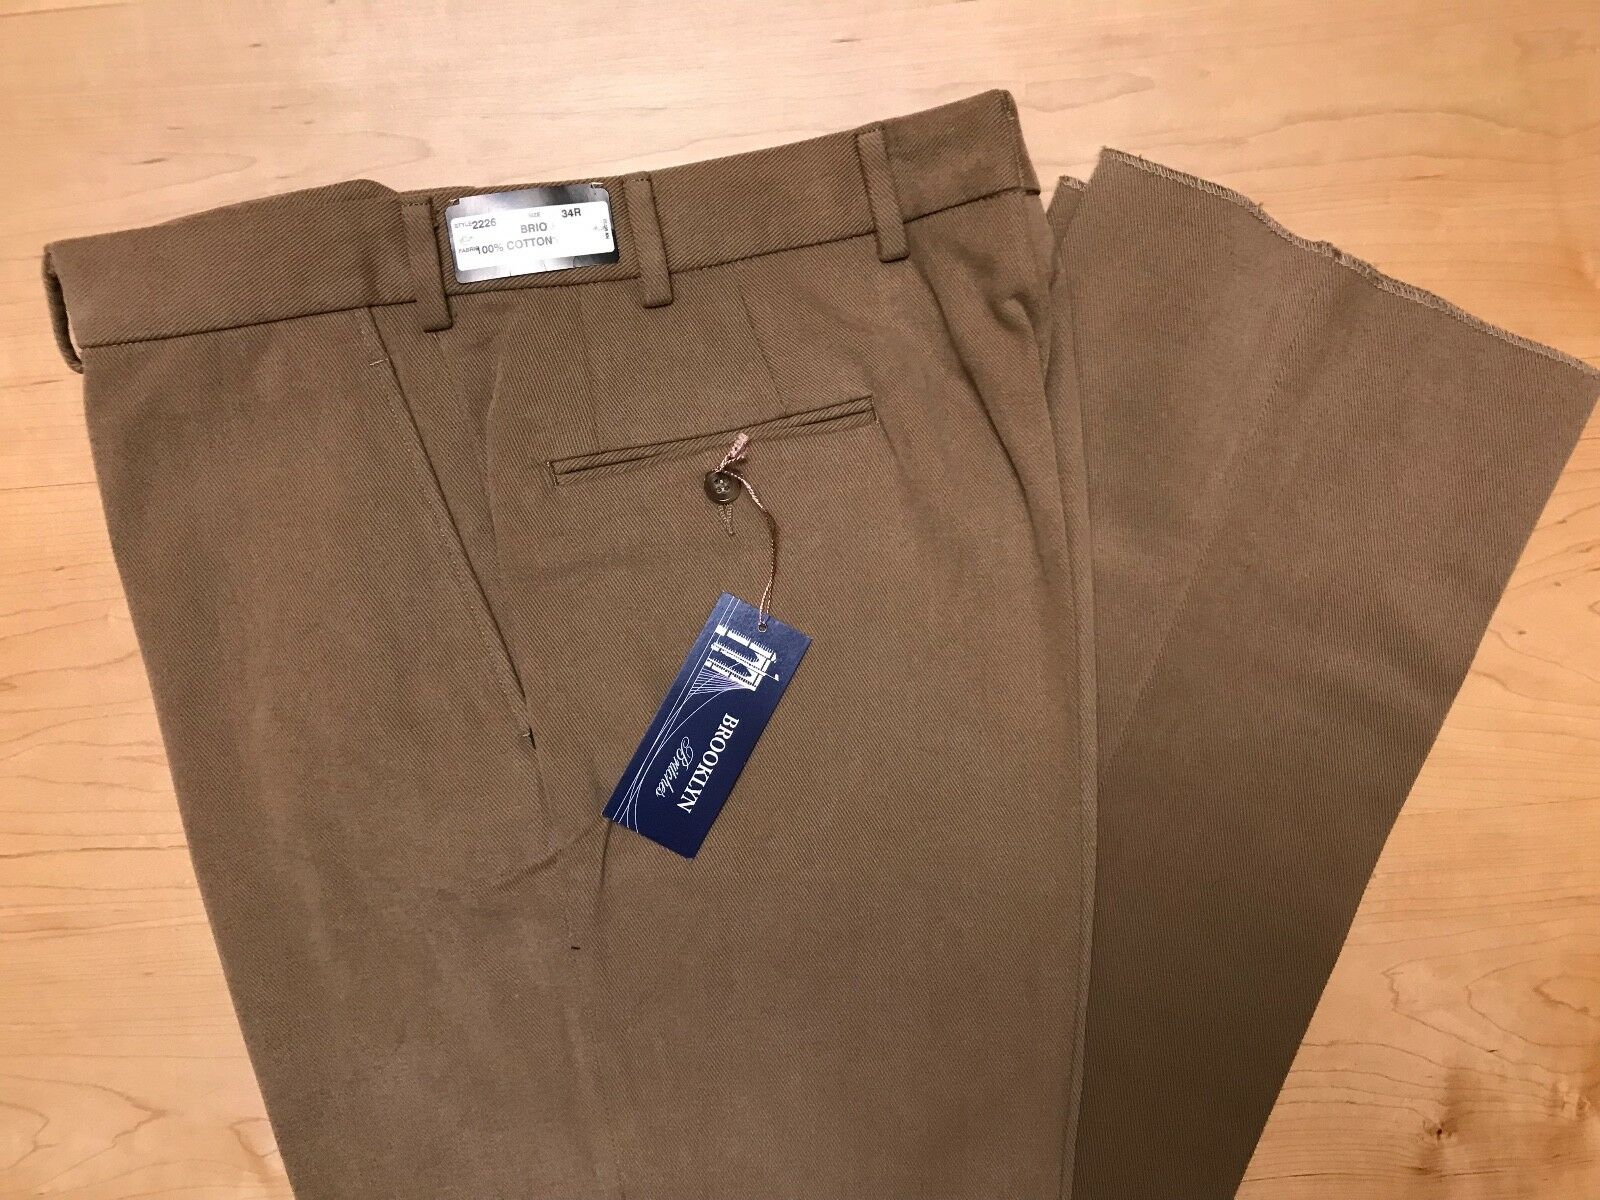 Hertling Trouser. 100% Cotton Twill   Brio fit   Size 34   2226. NEW.